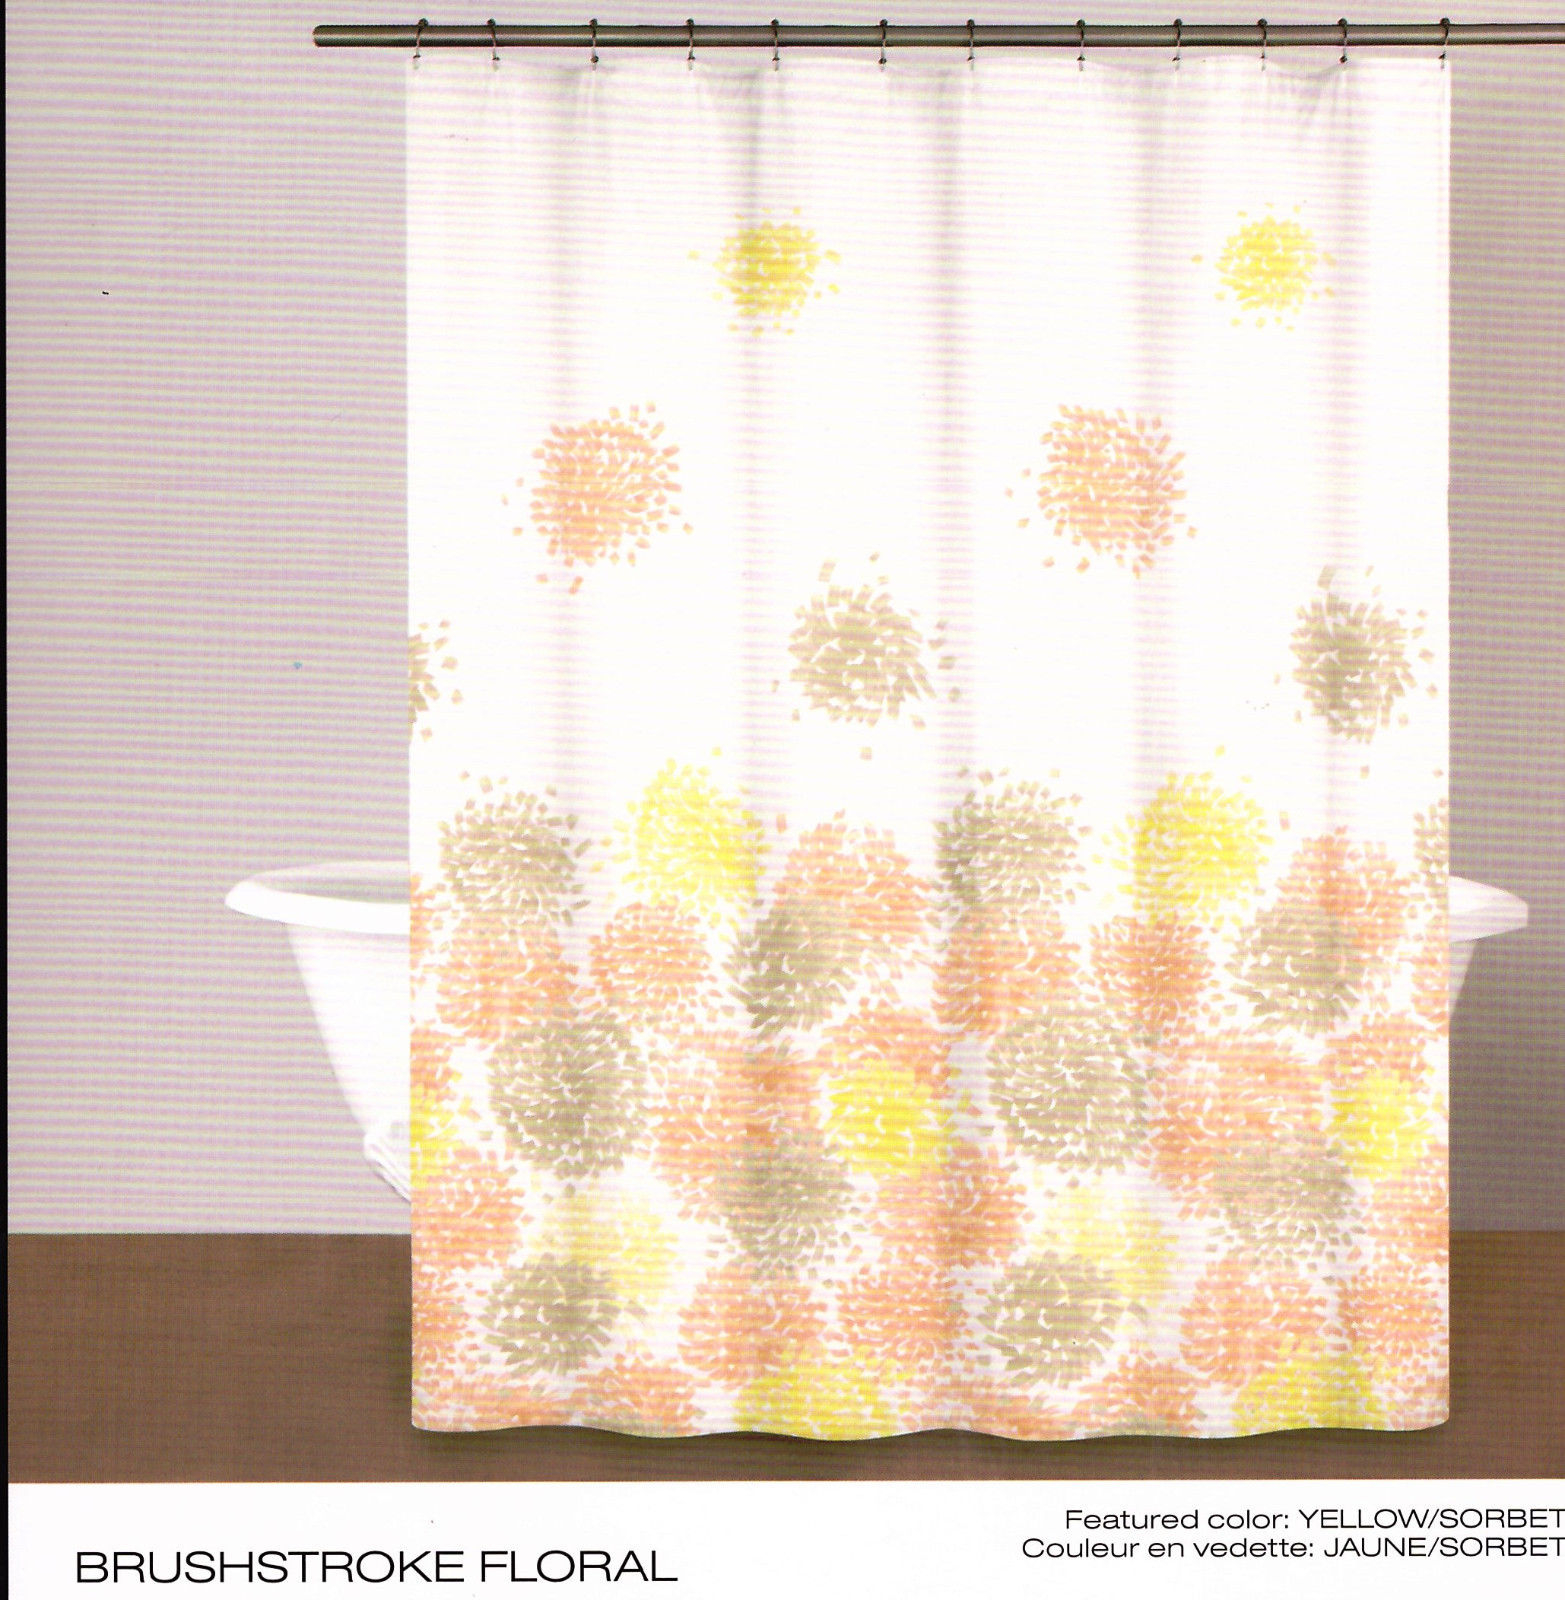 Dkny Brushstroke Floral Shower Curtain Yellowsorbet White Cotton Throughout Proportions 1565 X 1600